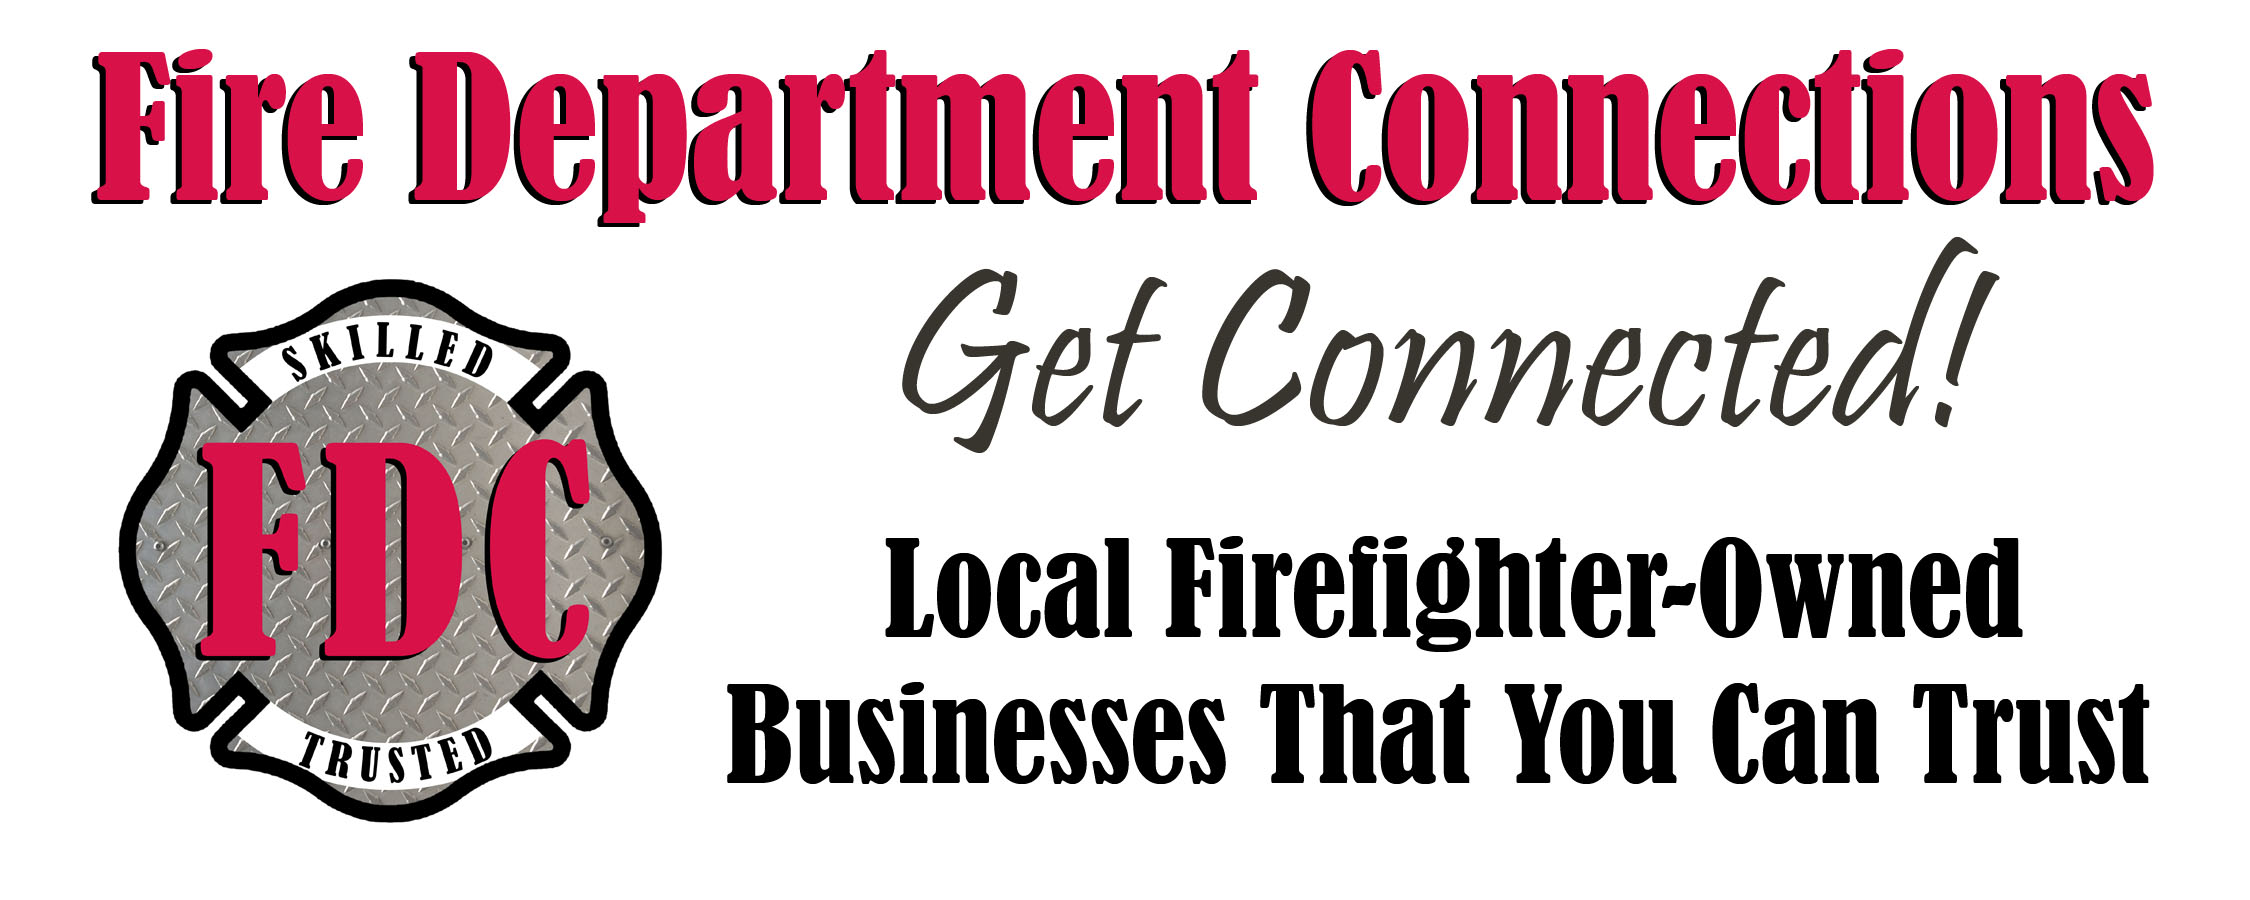 Business Owner Directory - Find Business Owners - Fire ...